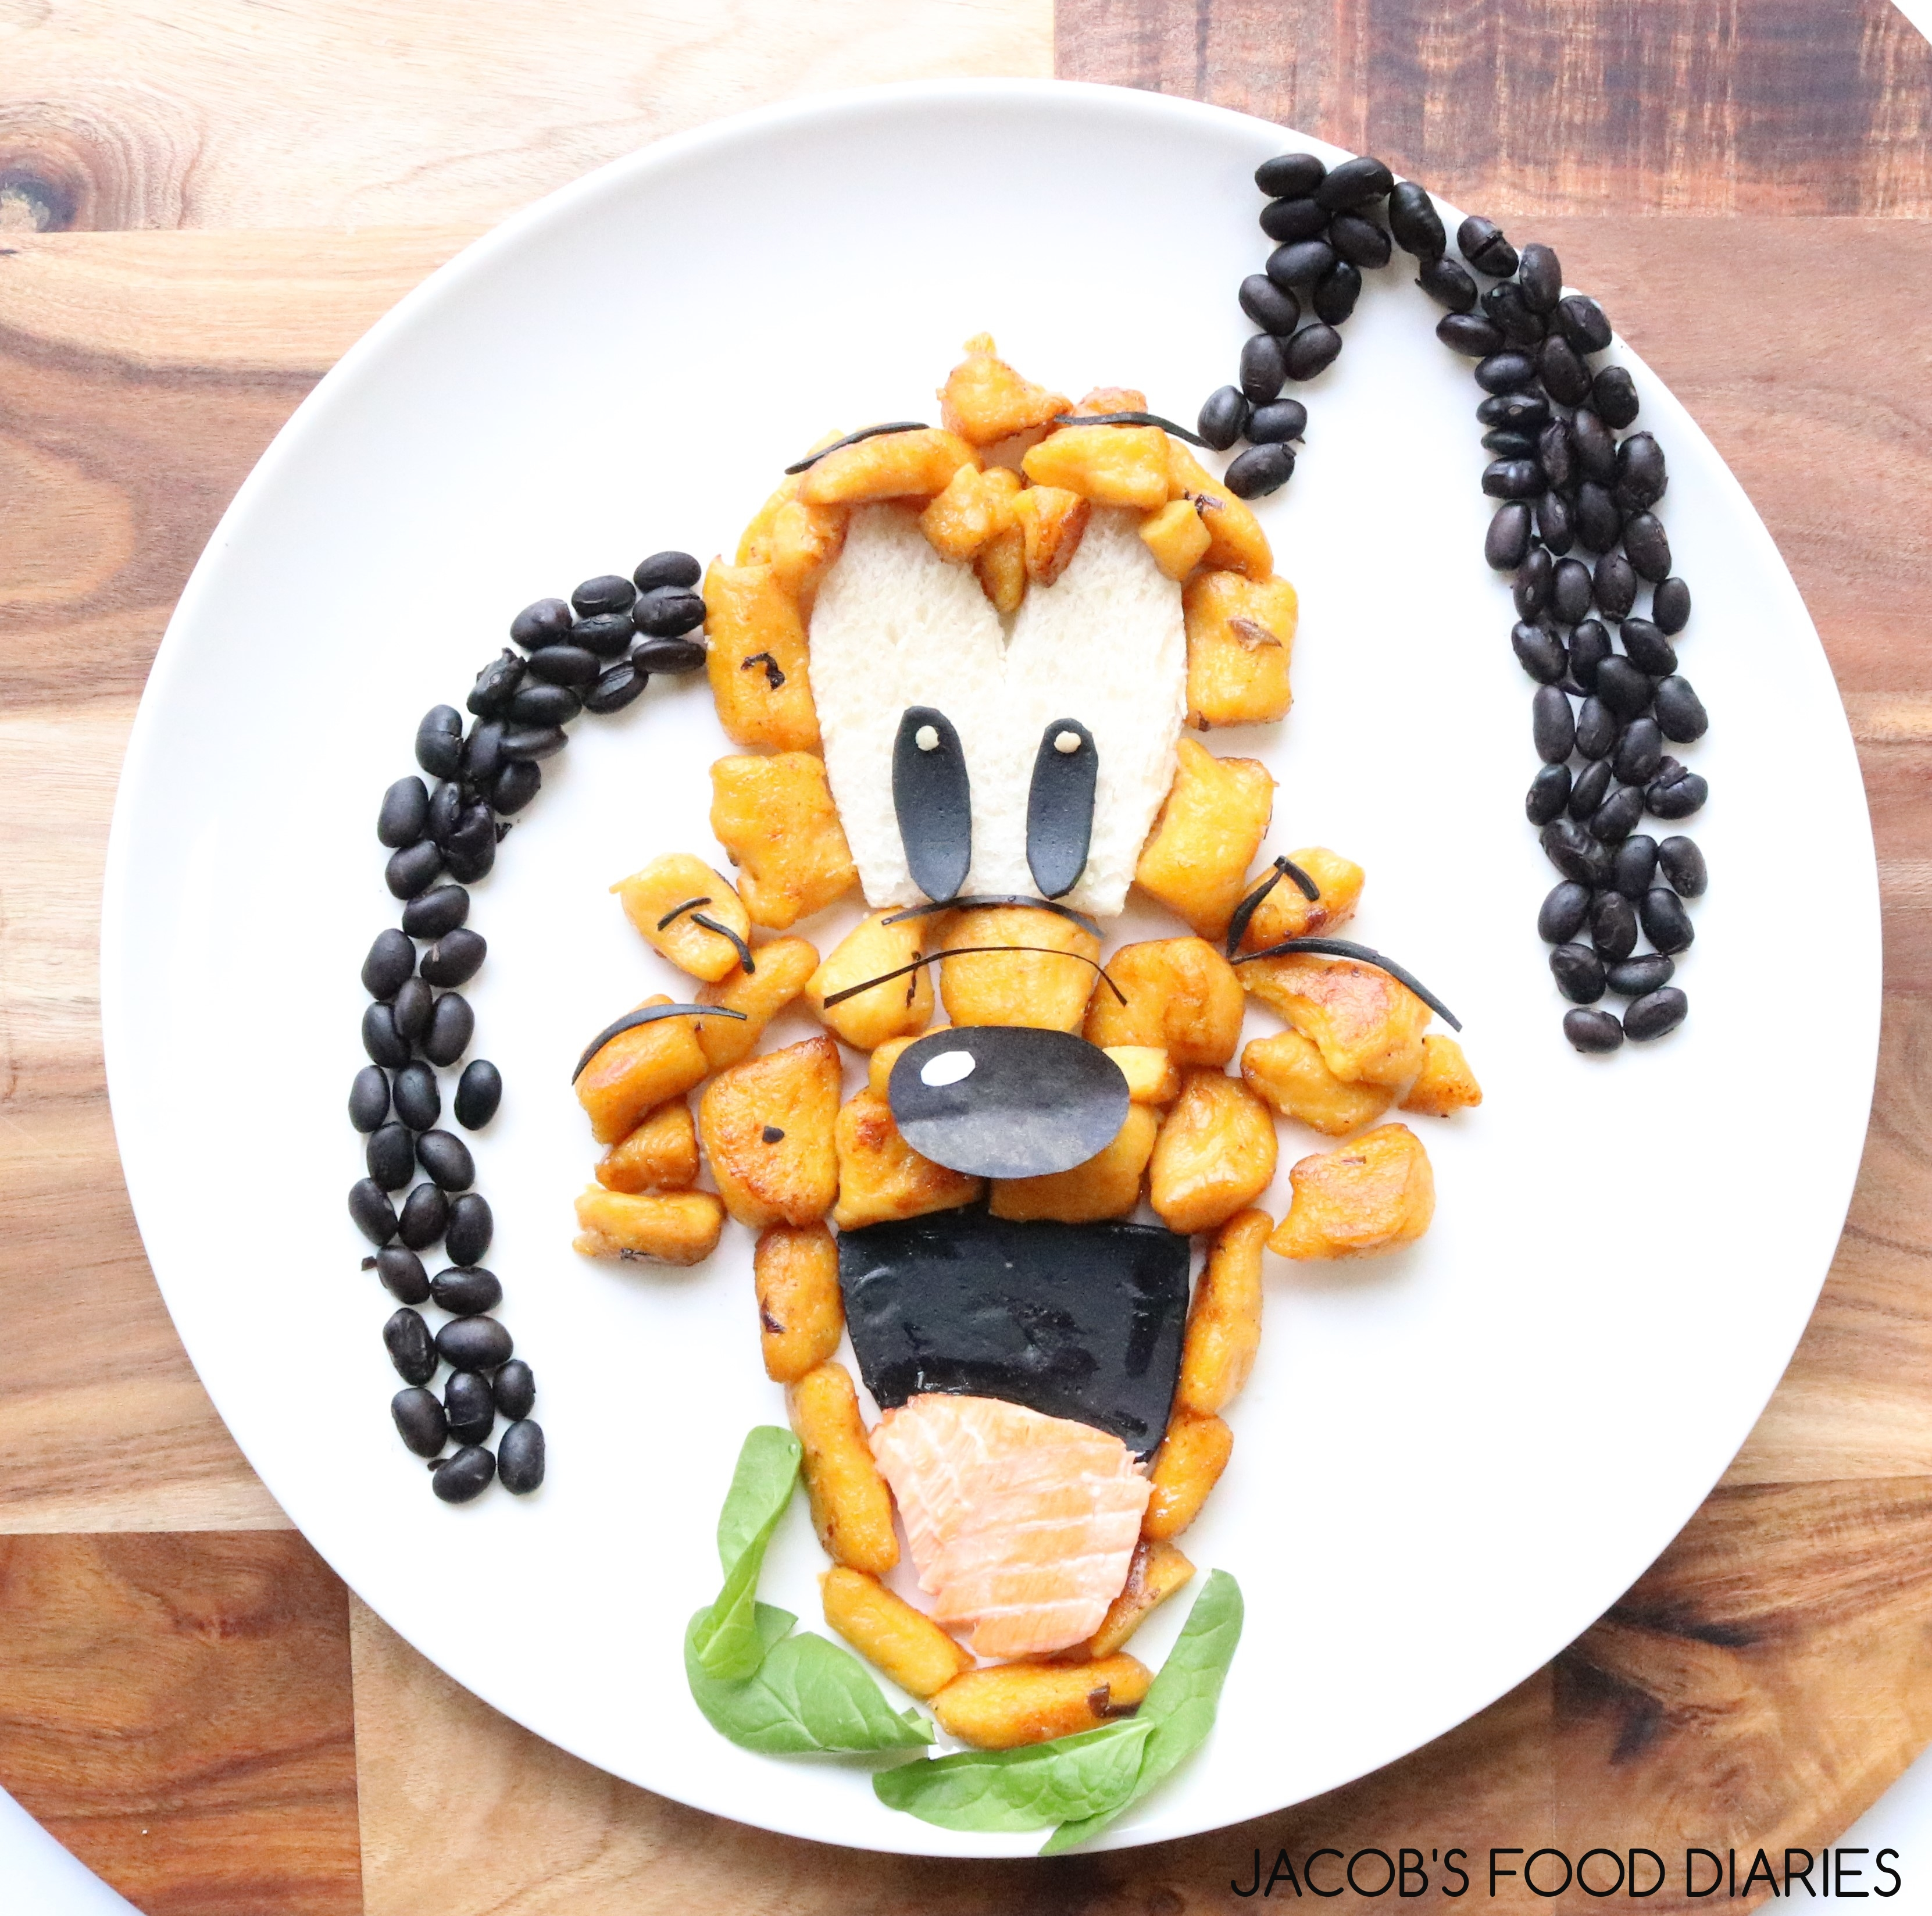 goofy made in food